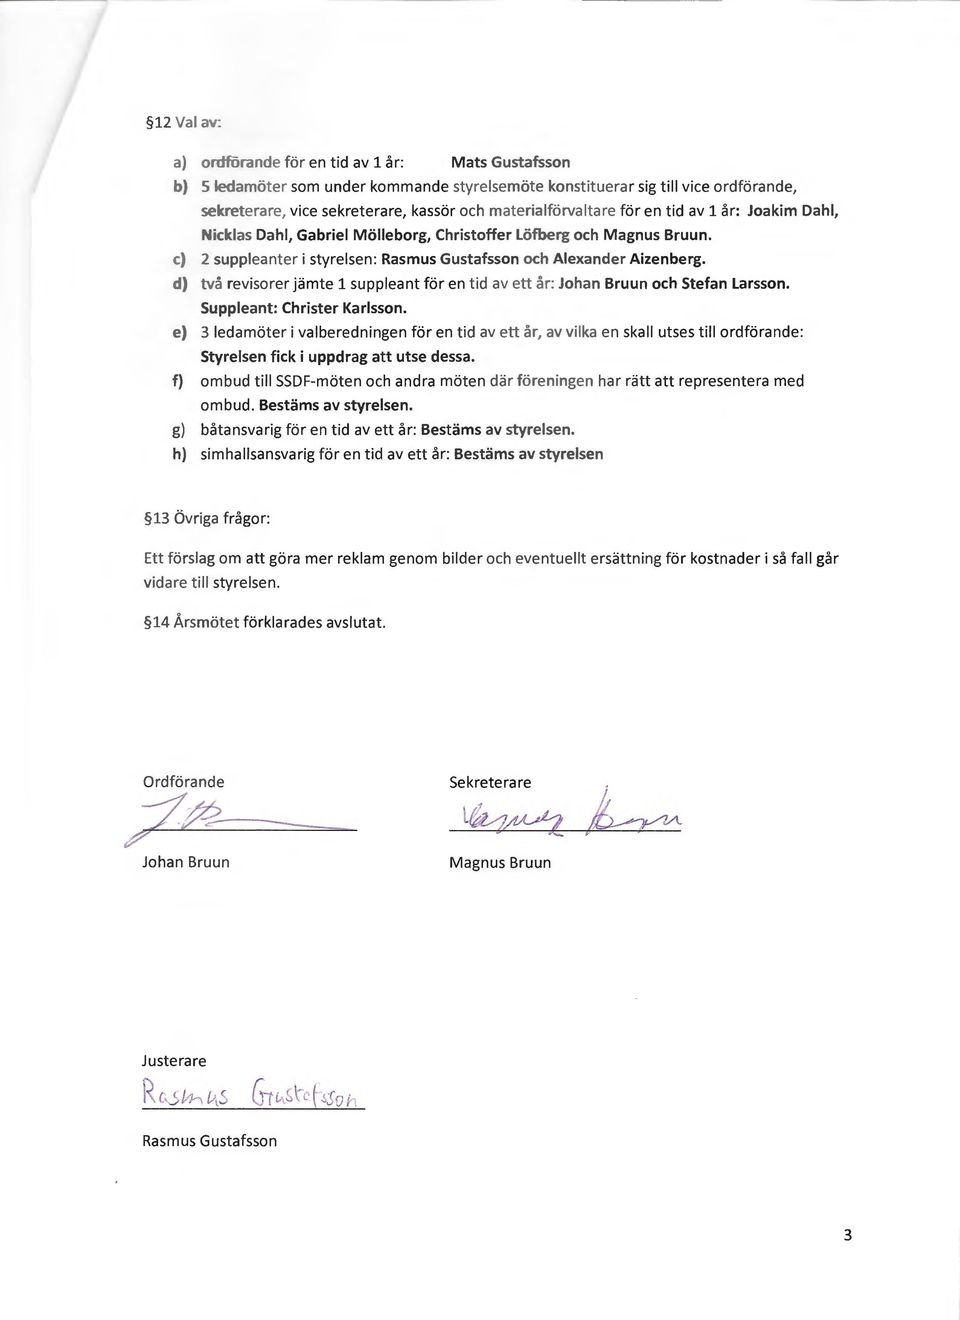 d) tva revisorer jamte 1 suppleant for en tid av ett ar: Johan Bruun och Stefan Larsson. Suppleant: Christer Karlsson.